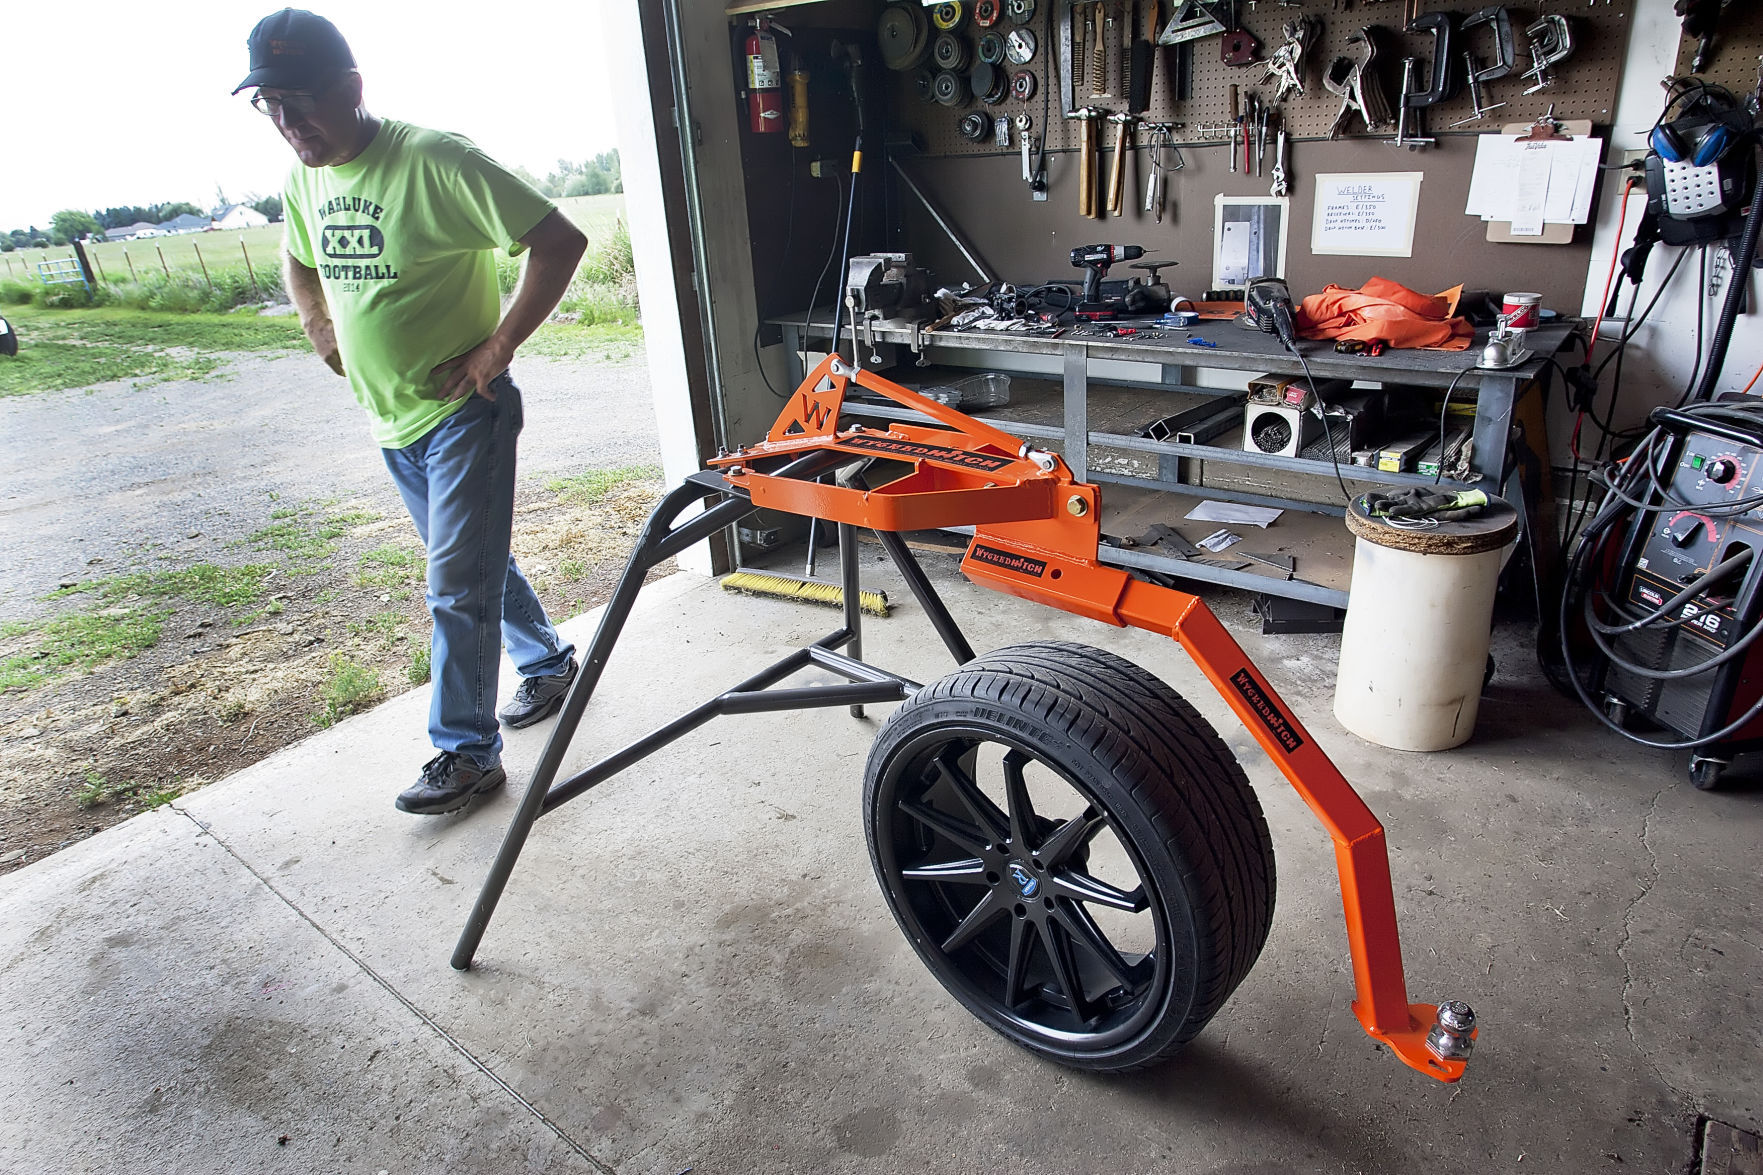 ellensburg s rich arlt finds market for slingshot hitch news rh dailyrecordnews com